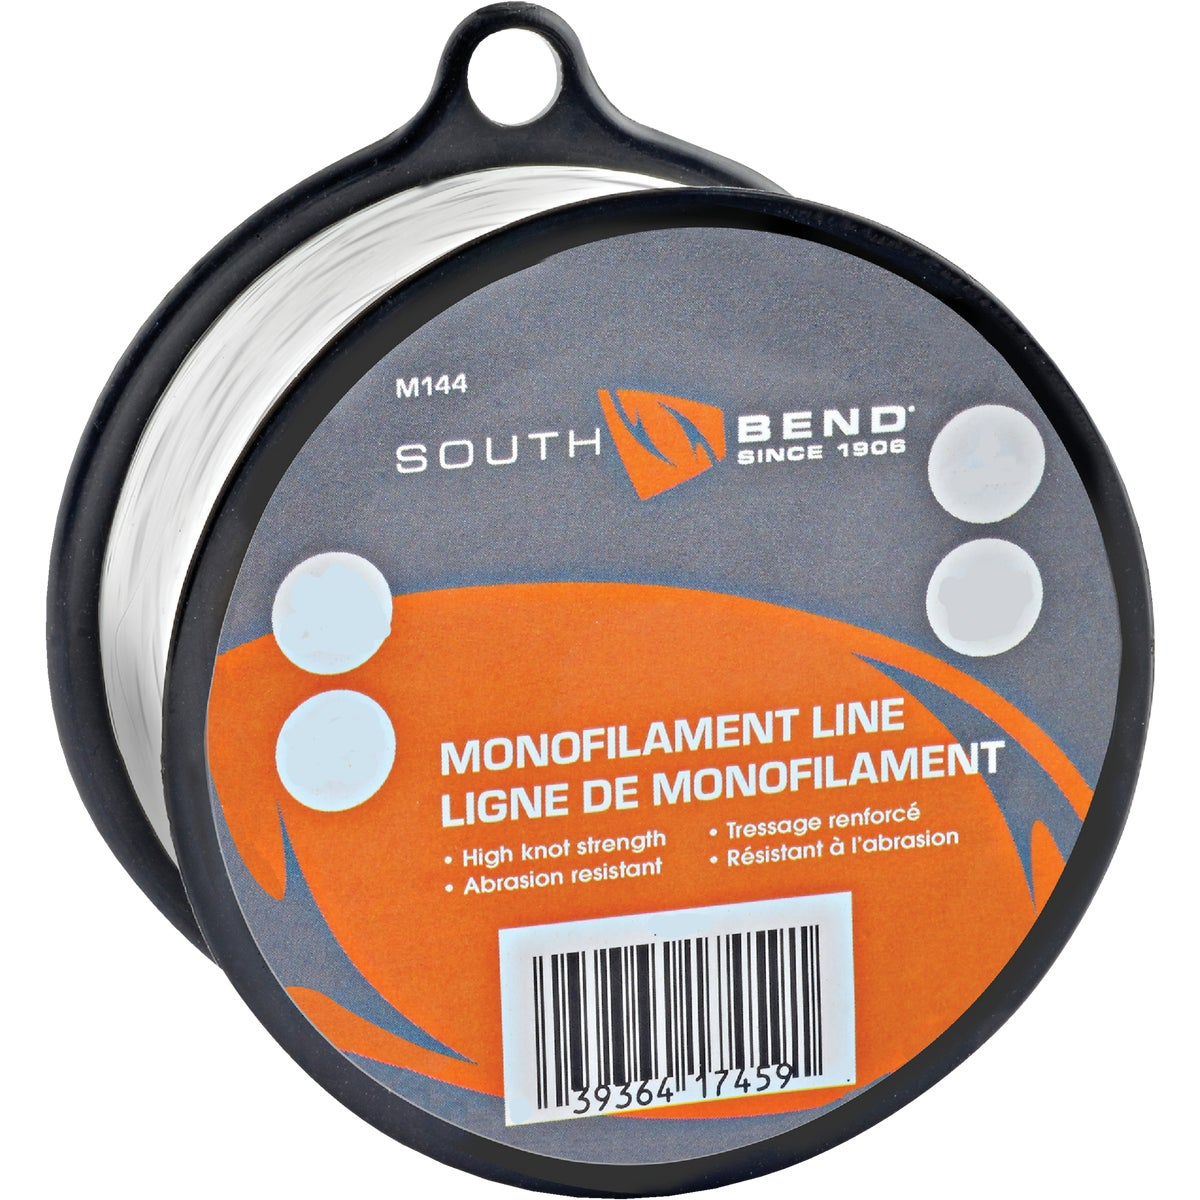 10LB 650YD MONO LINE - M1410 by South Bend Sptg Good